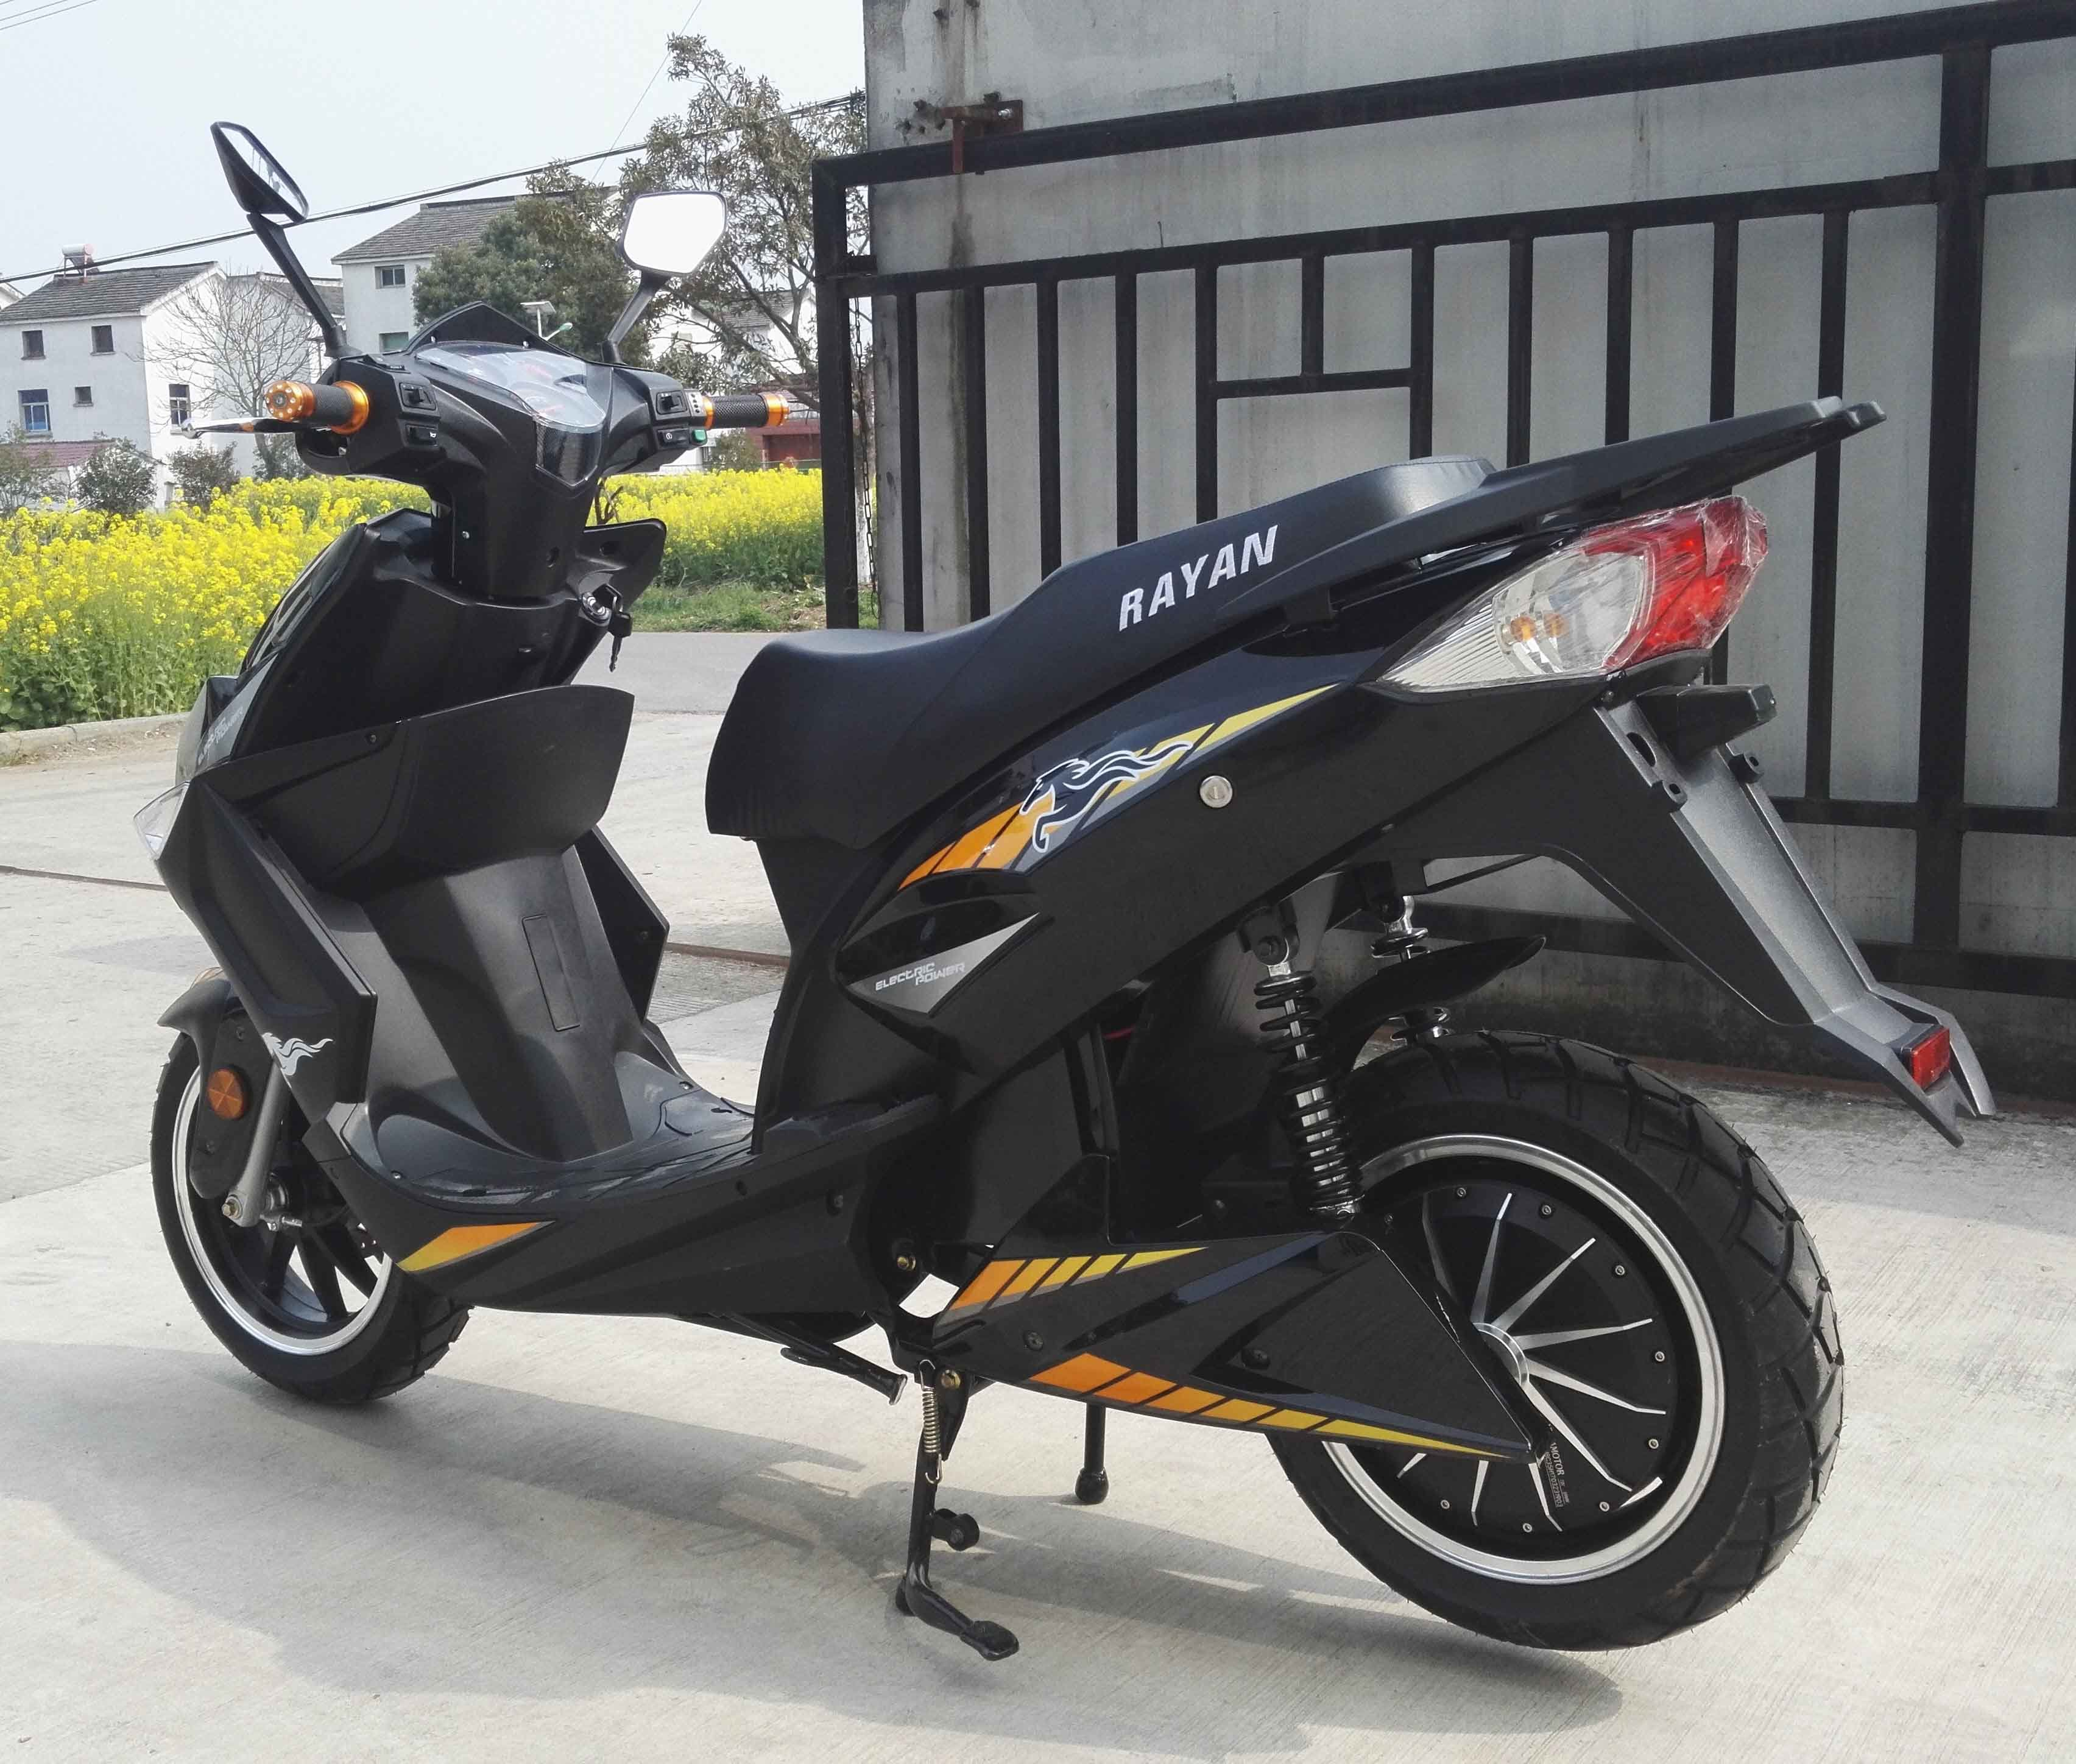 2017 Hot Sales 1000W/1500W/2000W 72V20ah Lead Acid/ Lithium Battery Electric Motorcycle